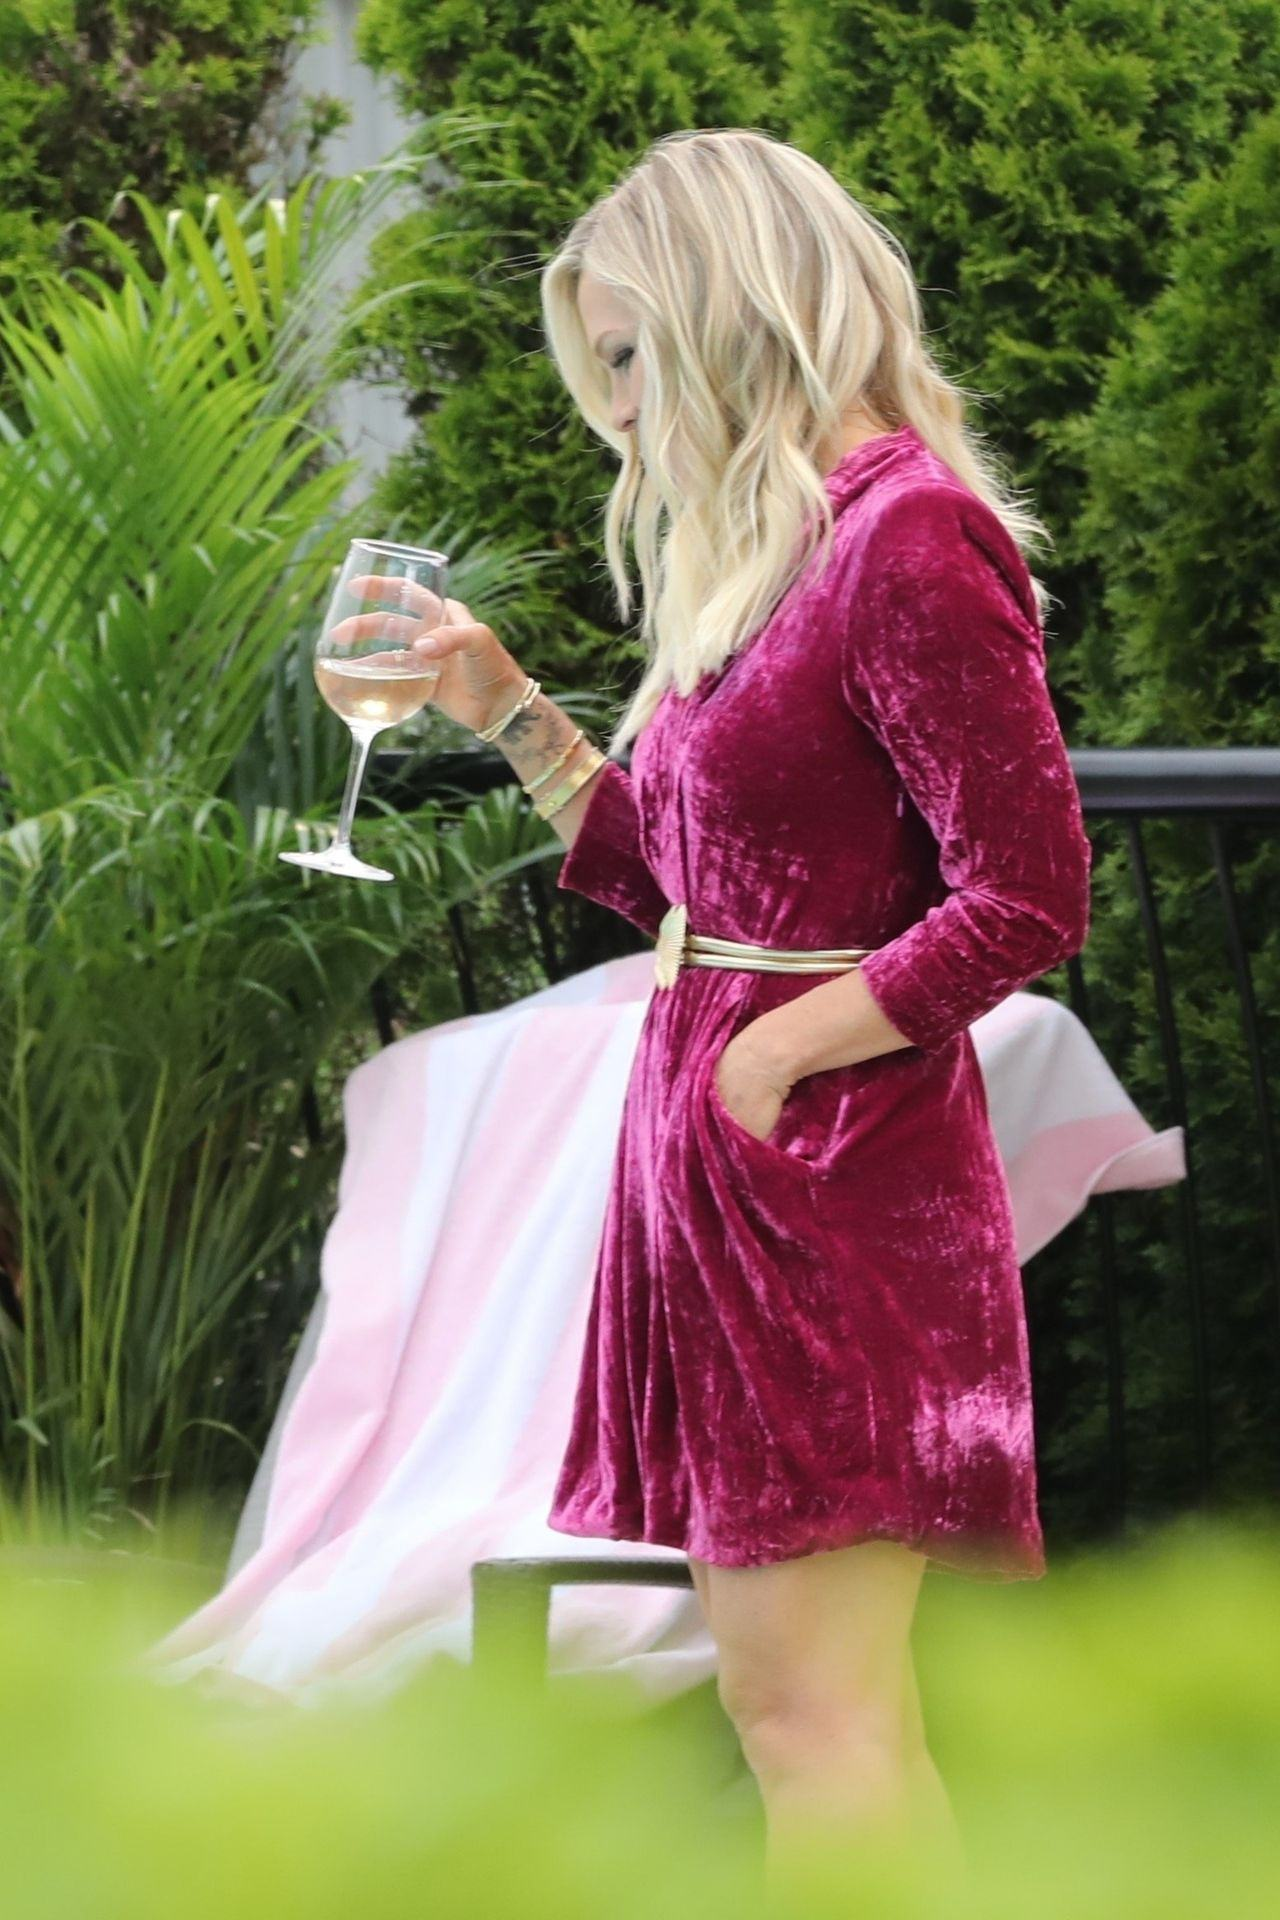 Tori Spelling And Jennie Garth Shows Off Great Cleavage